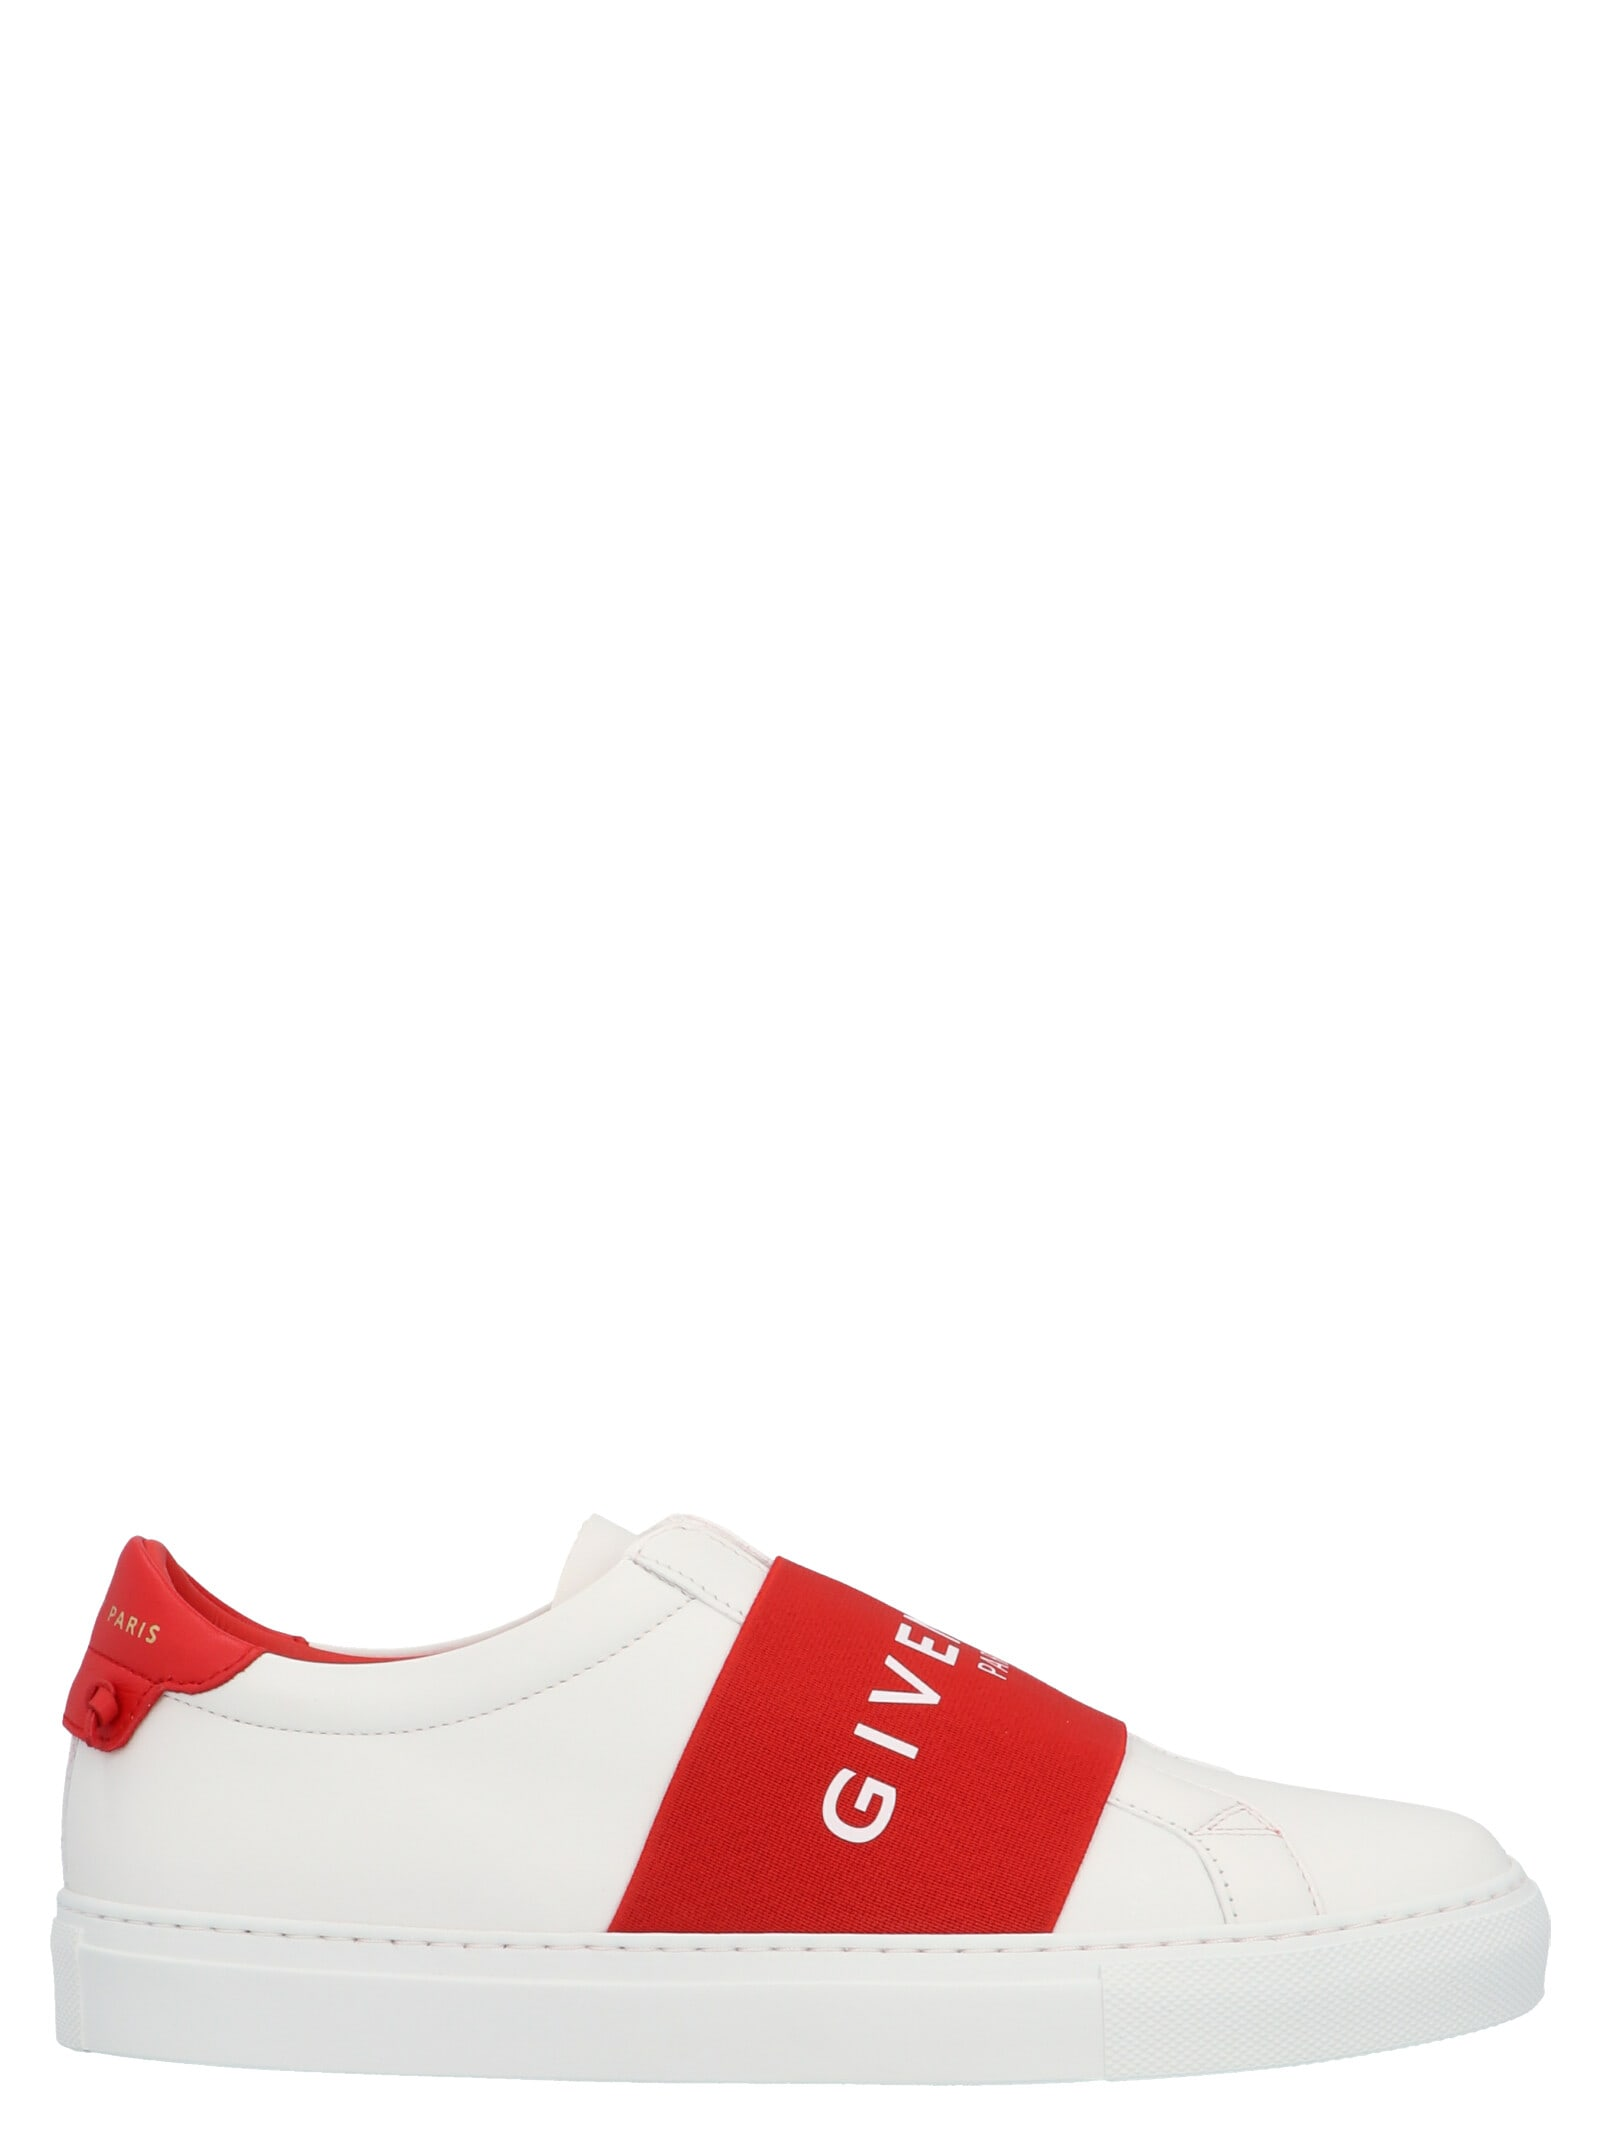 Givenchy URBAN STREET SHOES